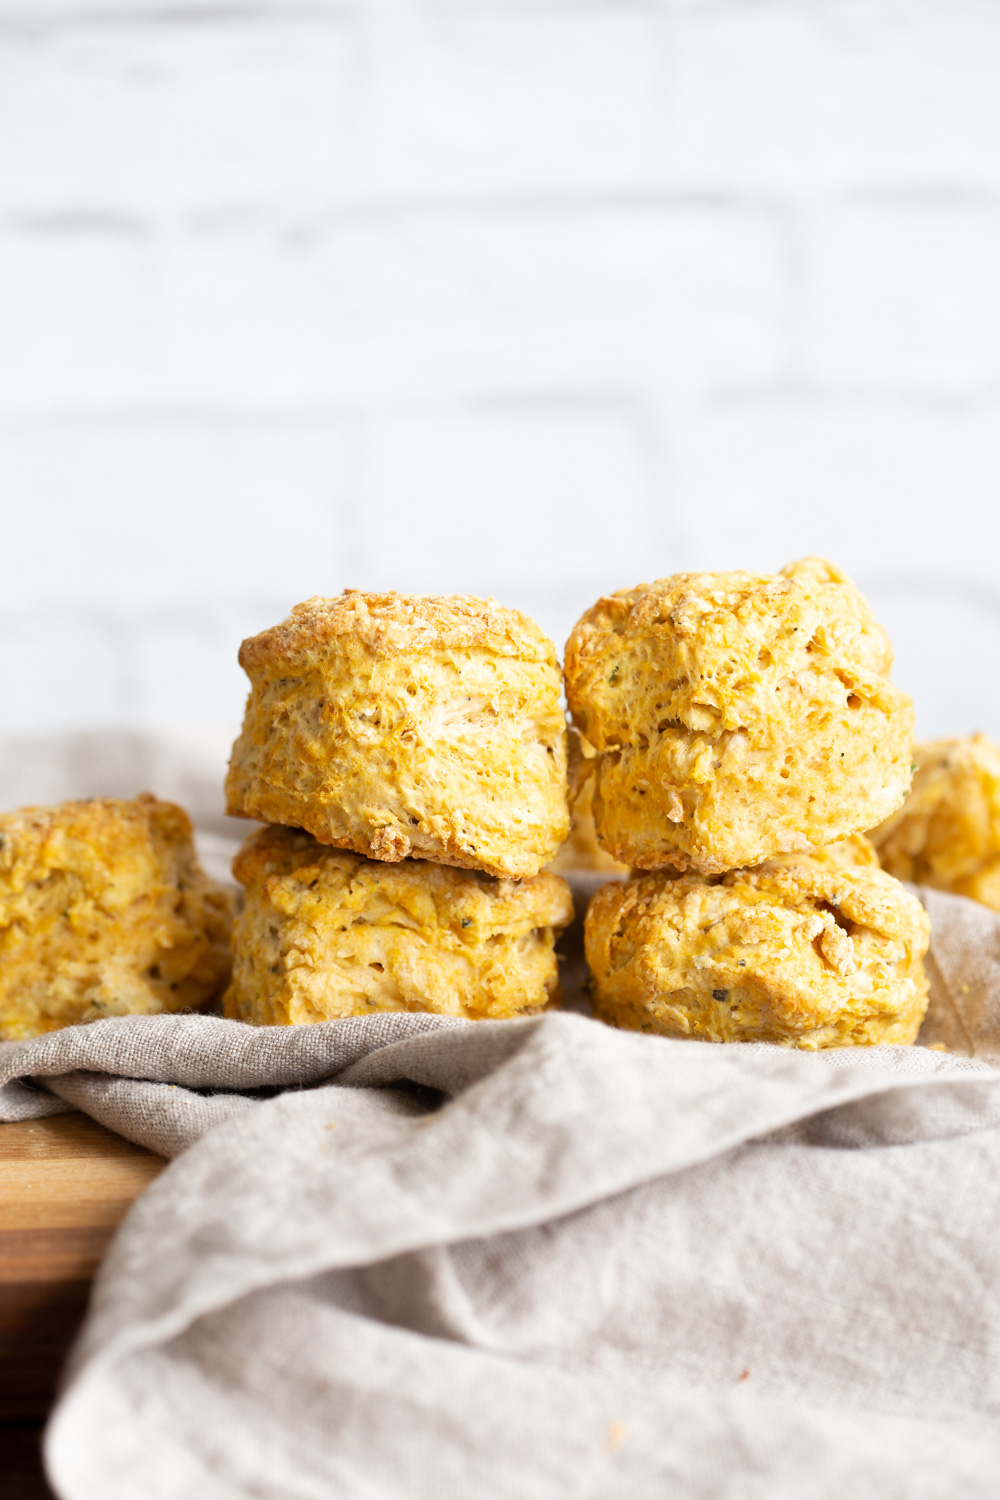 Oil-free Vegan Biscuits. 7 Ingredients, 1 Bowl, 30 Minute. These flaky savory herbed biscuits dont use any oil or butter! Soft inside and an amazing crumb. #VeganRicha #Vegan #Soyfree #Nutfree low fat #Biscuit #Recipe